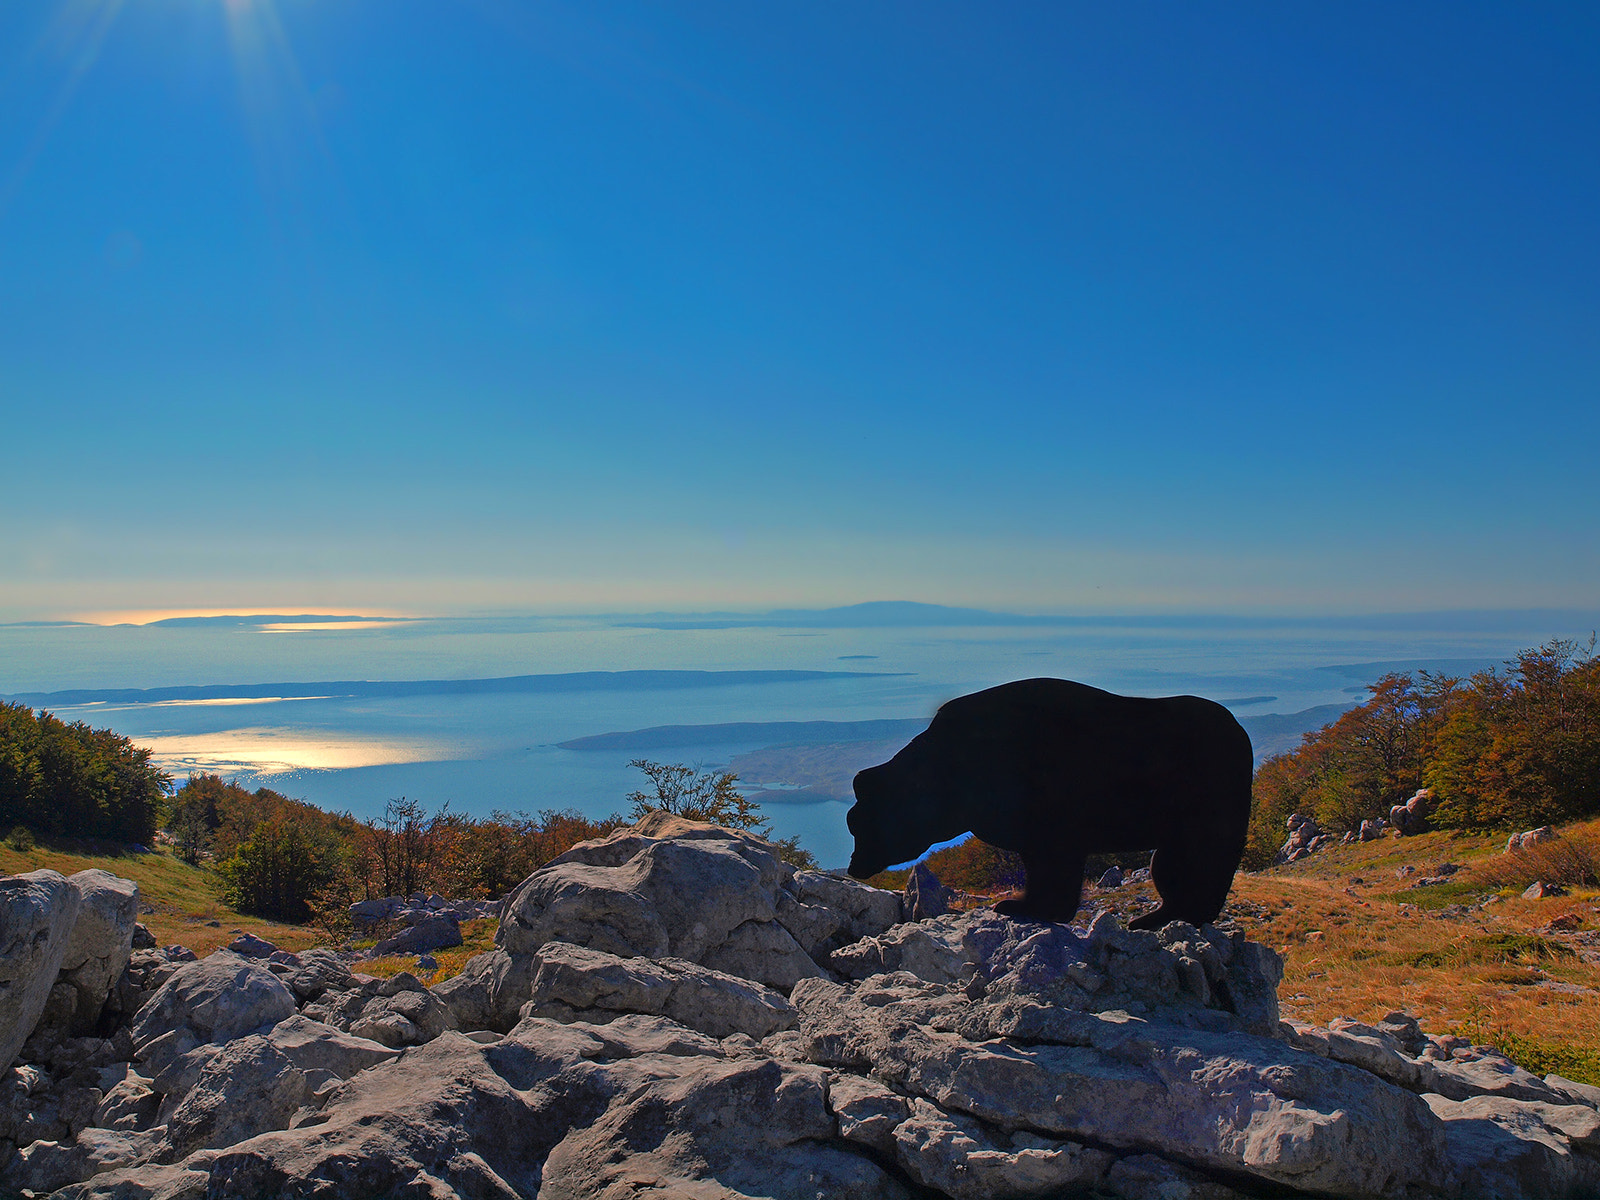 Photograph VELEBIT by Mirna Vidić on 500px